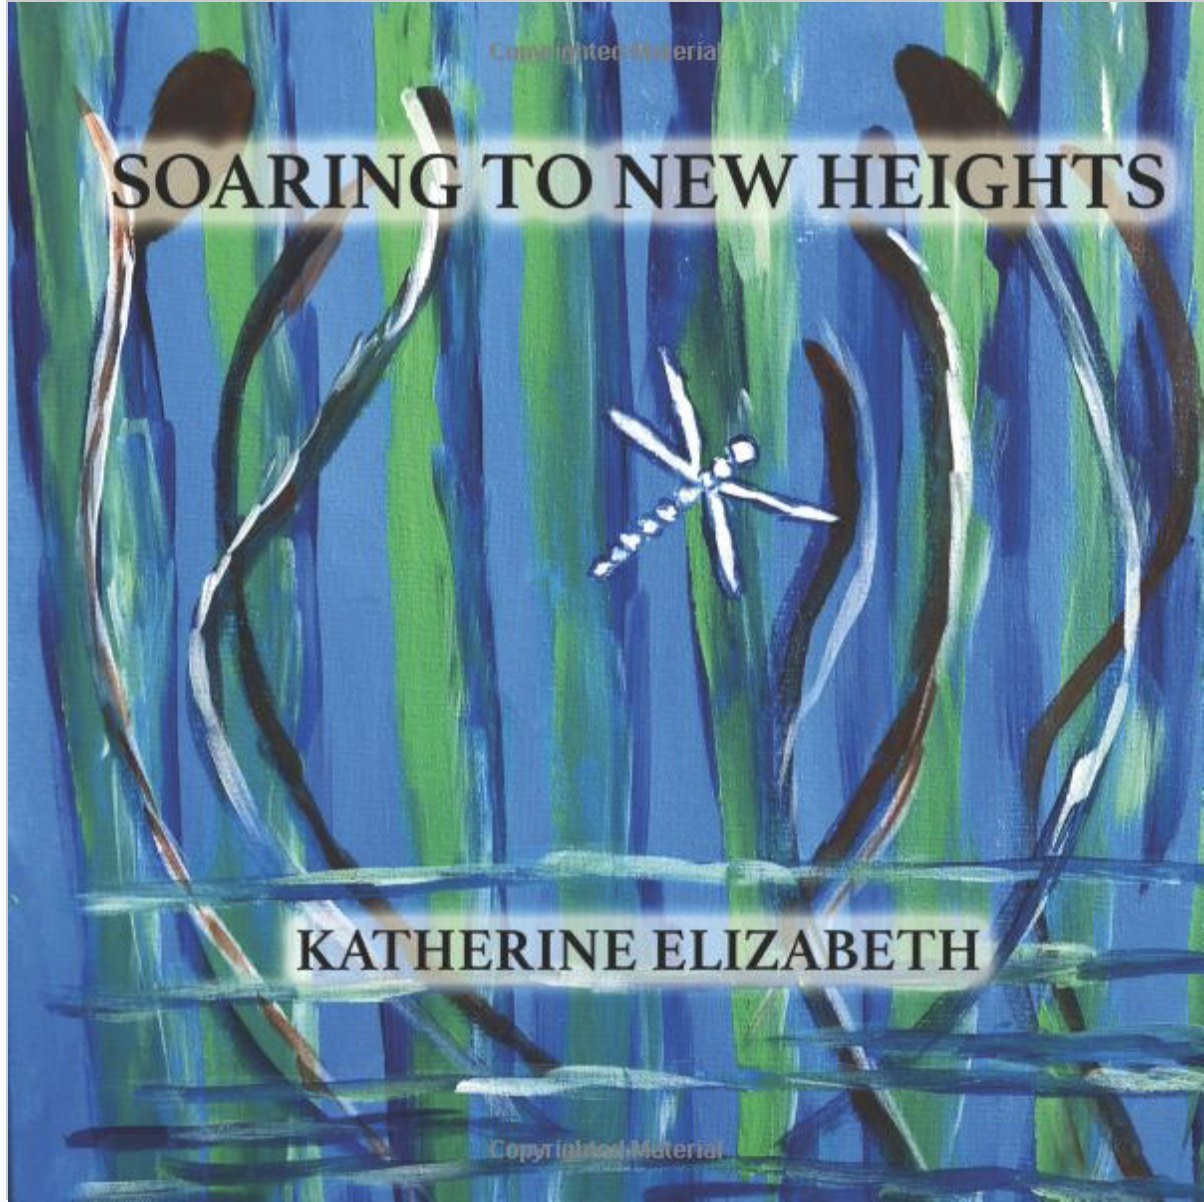 """Get Katherine Elizabeth's new poetry book"""" """"Soaring To New Heights""""  in our store now."""